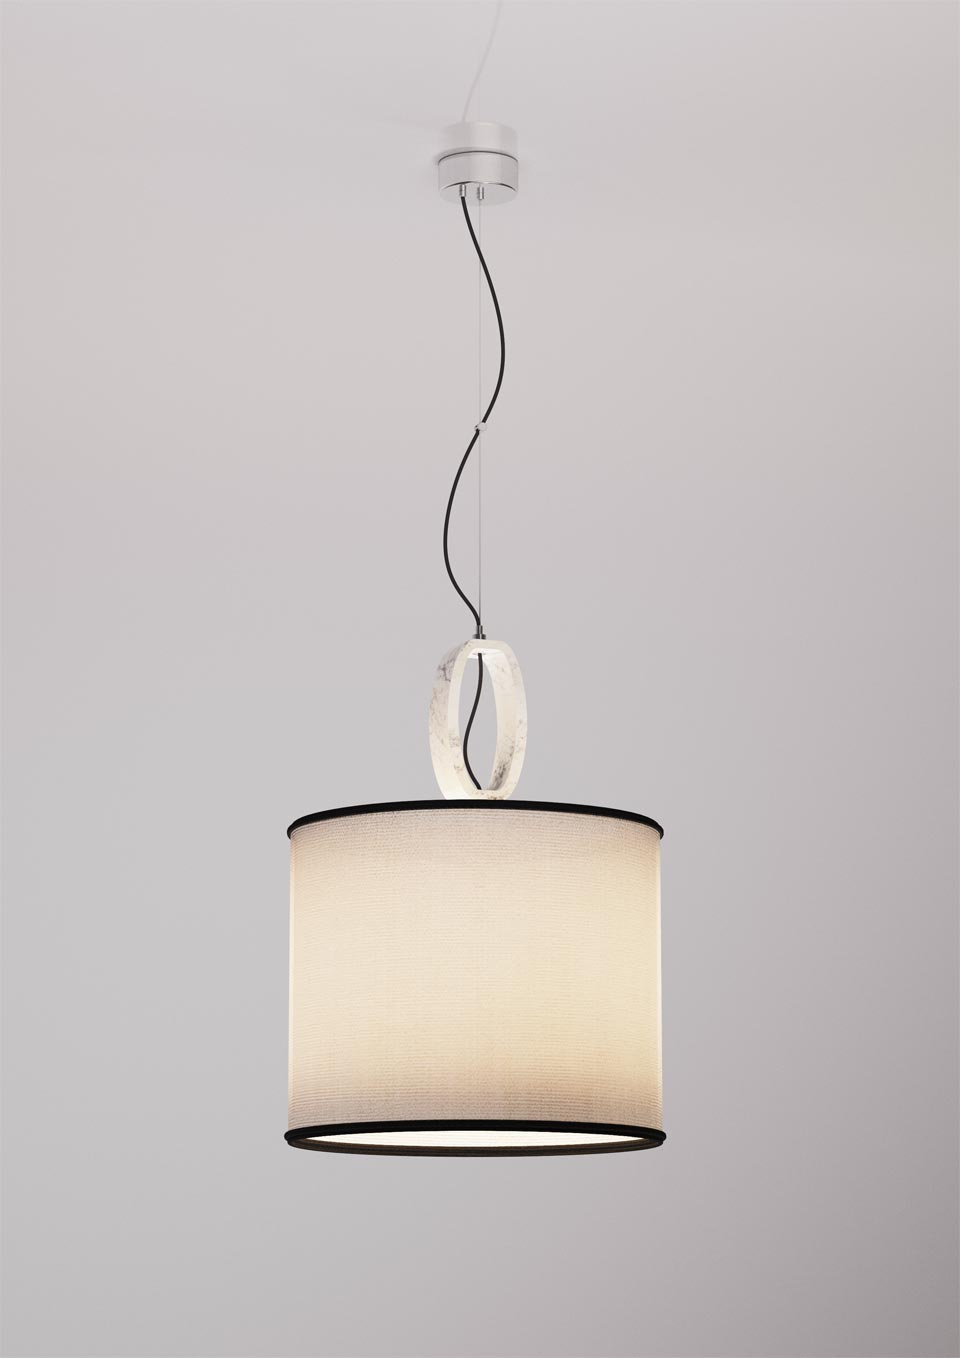 Single white pendant Deco ivory linen shade with black trim. Matlight.